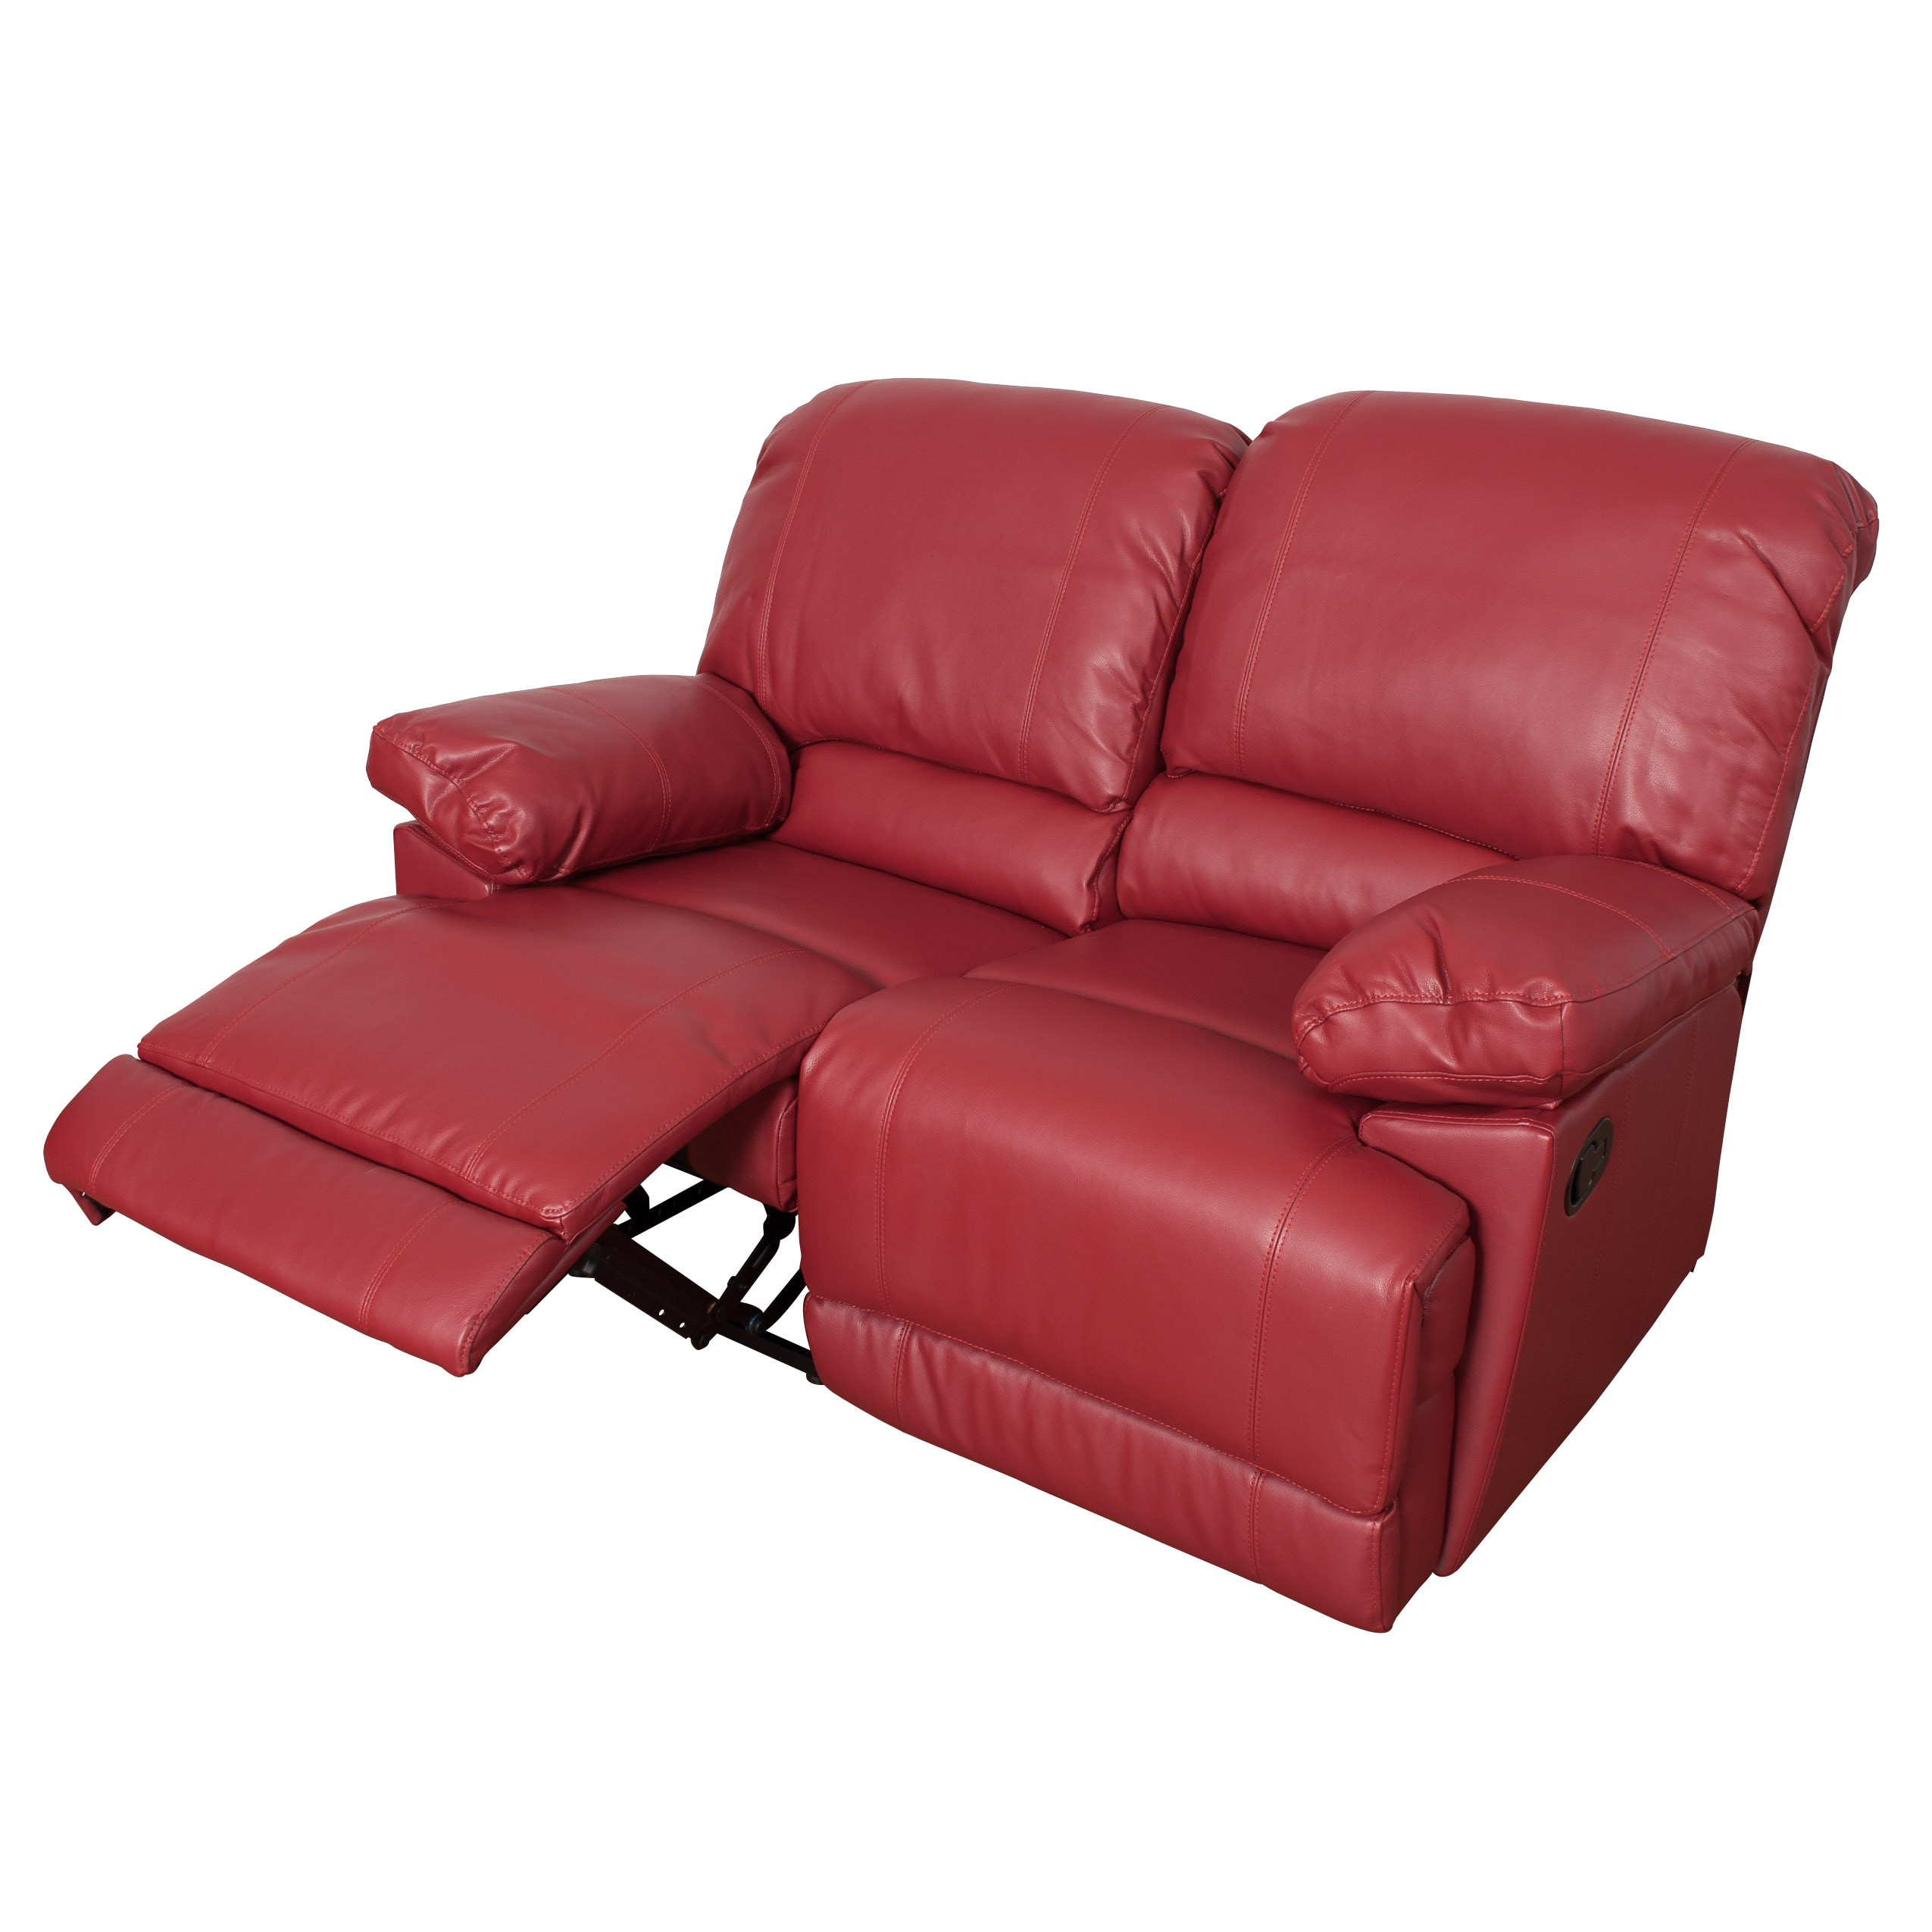 CorLiving Lea 3 Piece Bonded Leather Reclining Sofa